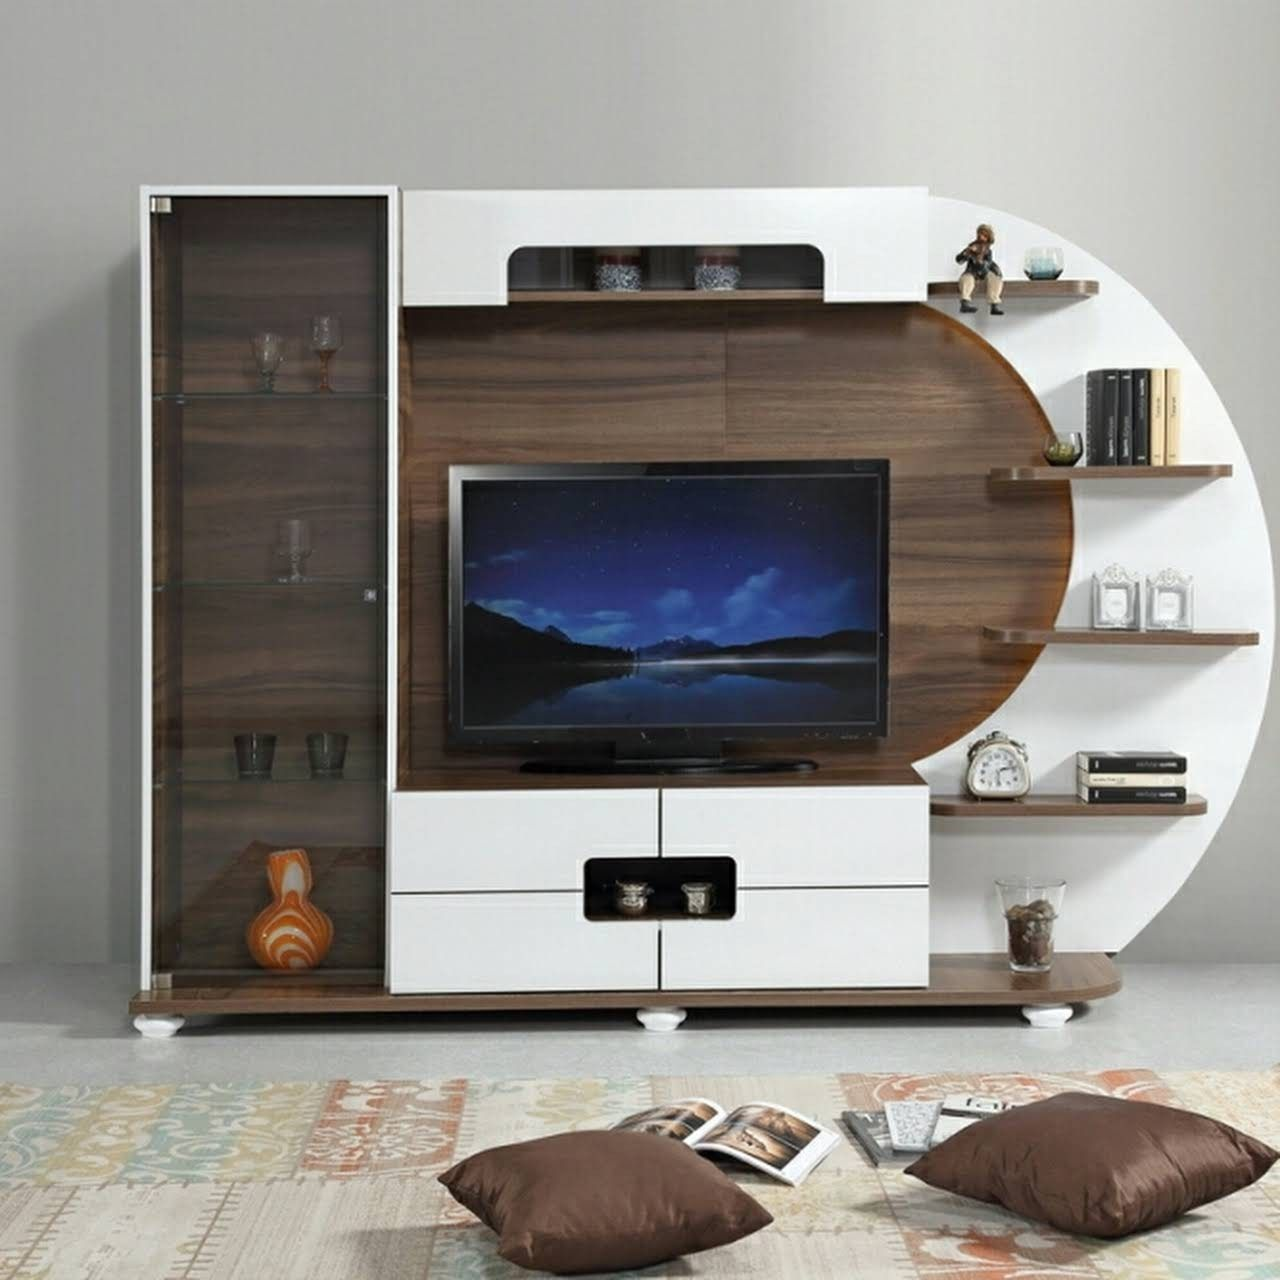 Top 50 Modern Tv Stand Design Ideas For 2020 In 2020 Living Room Tv Unit Tv Cabinet Design Modern Tv Units #tv #units #designs #for #living #room